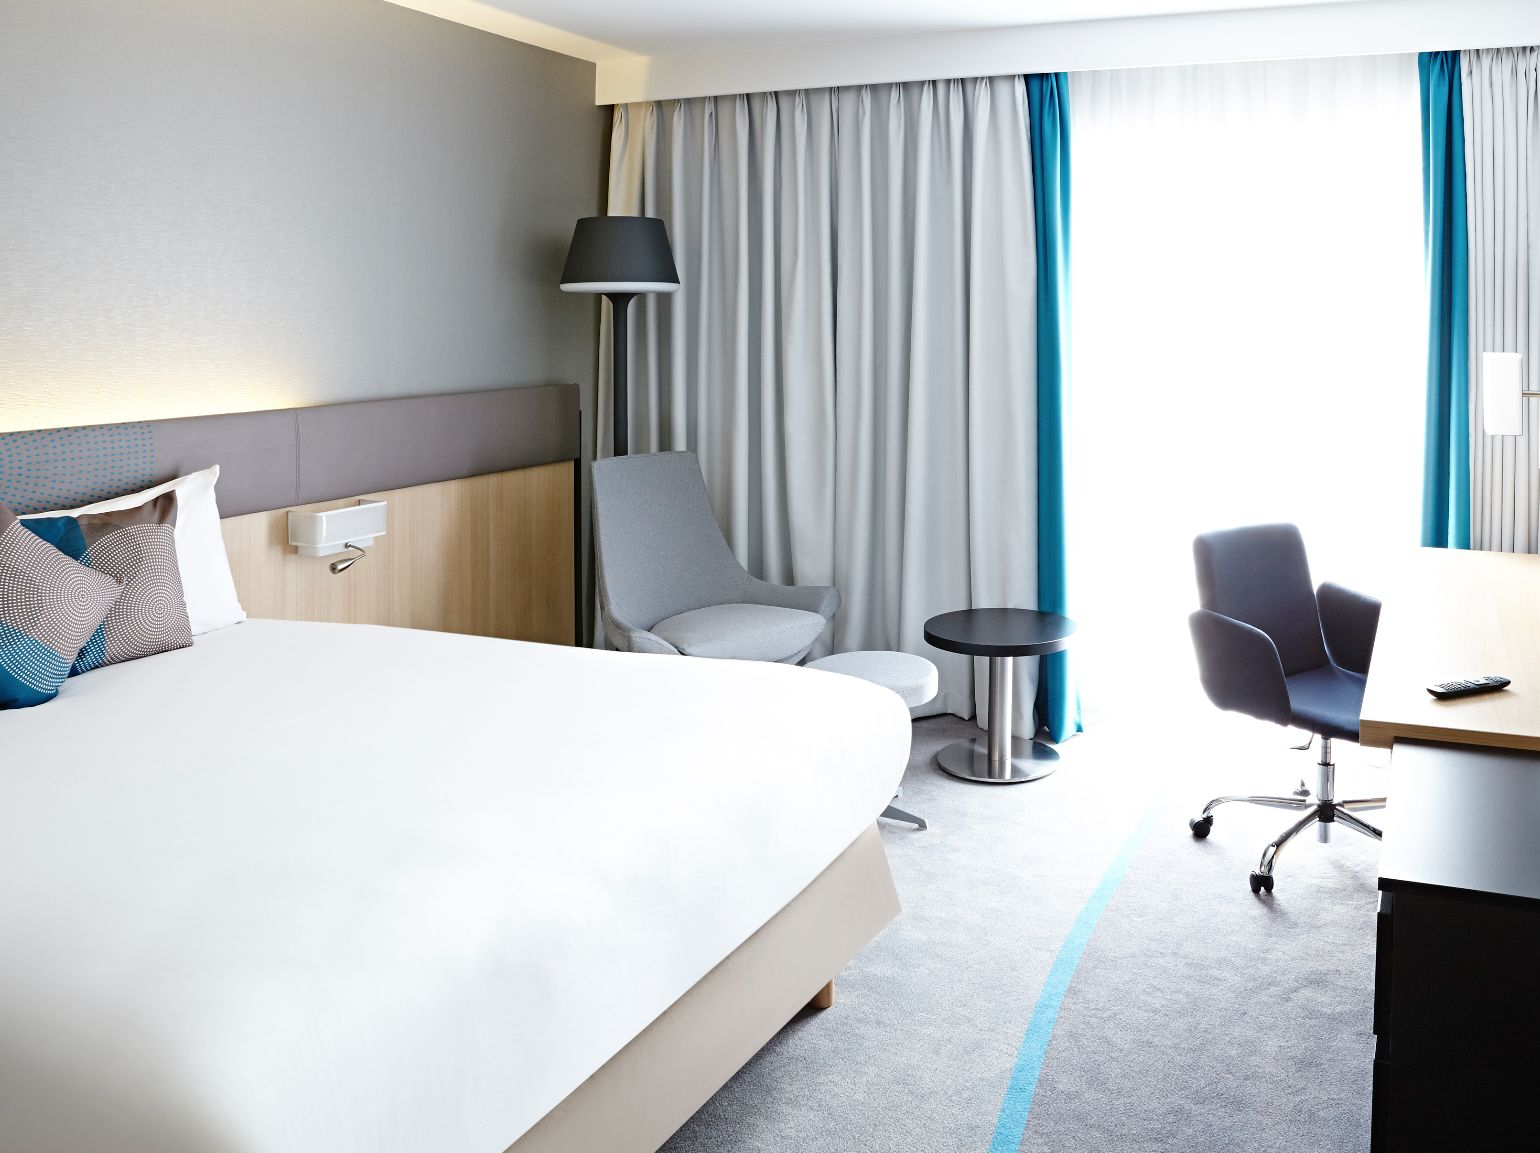 Property Development in London, Bedrooms in Novotel